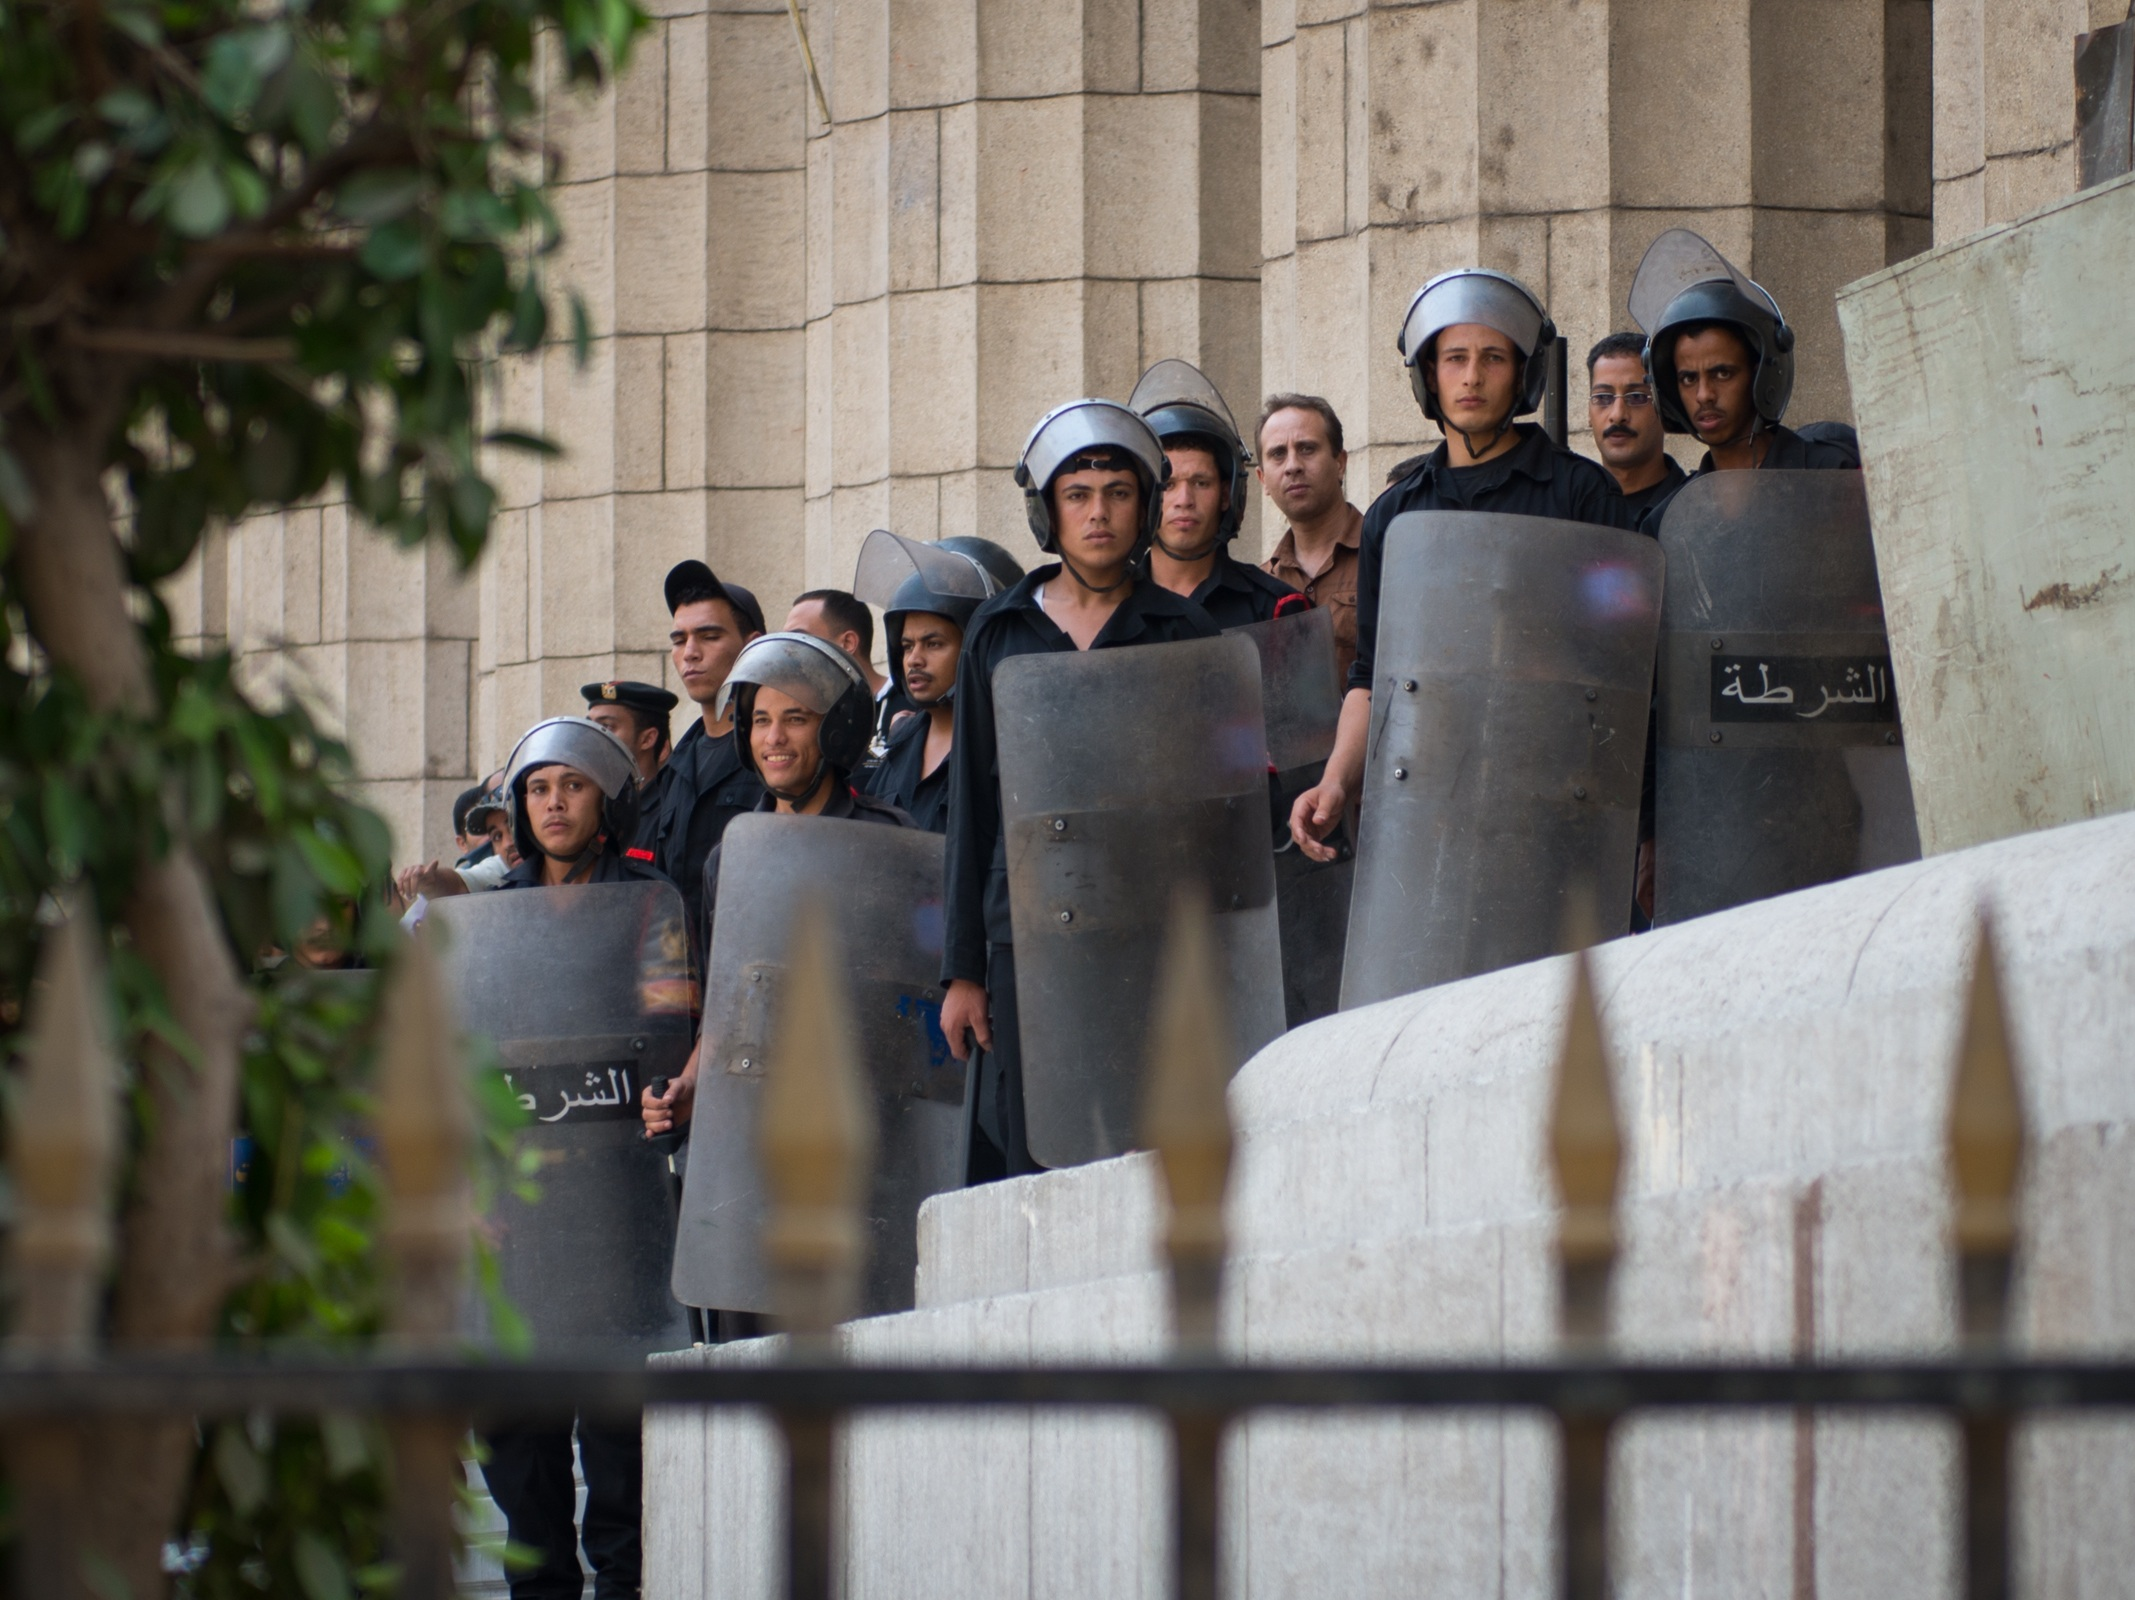 Egyptian police with shields at the Cairo Supreme Court